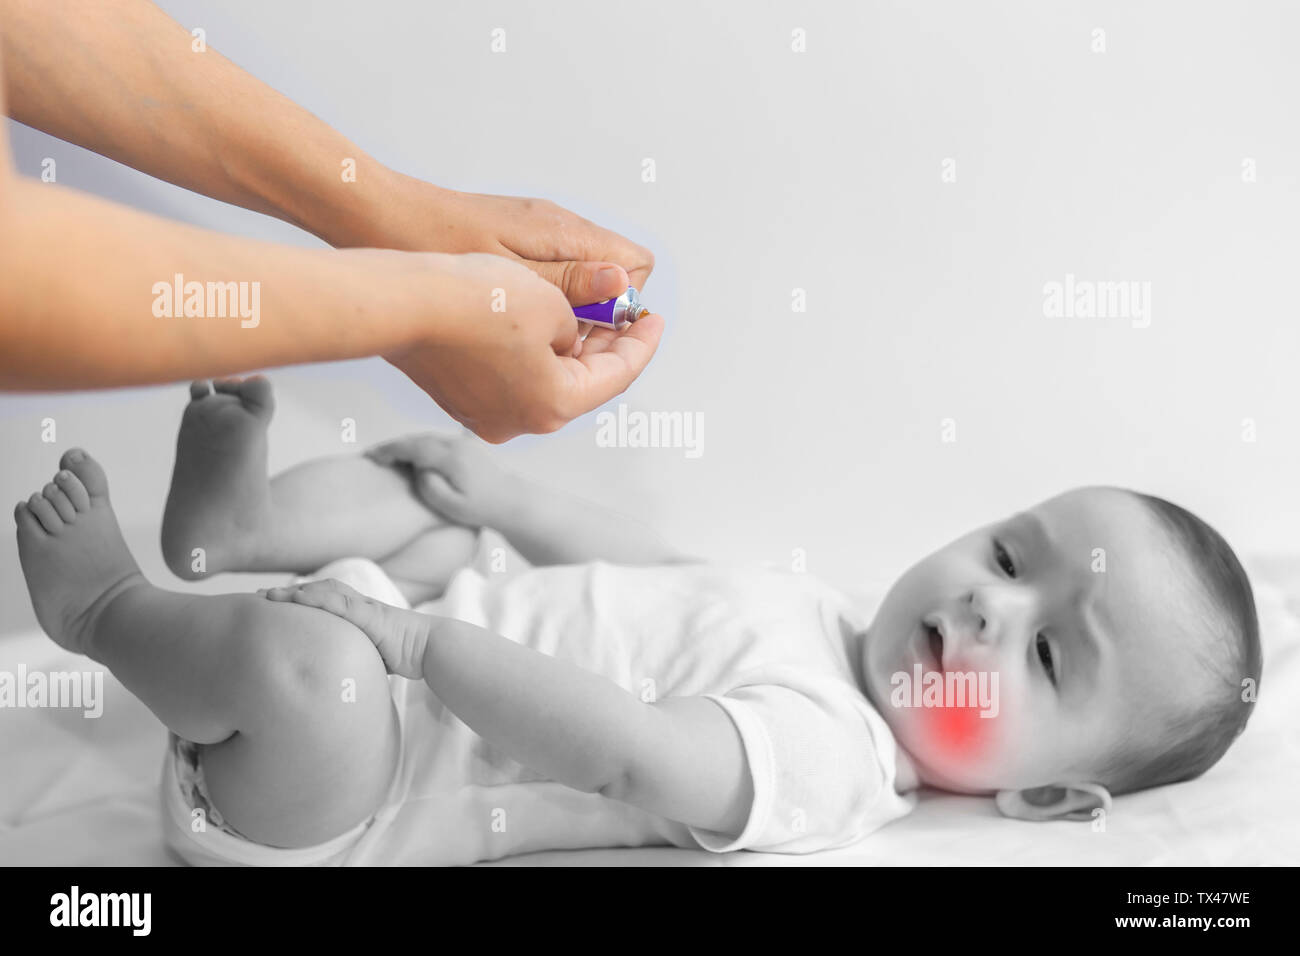 Baby boy teething pain. Little 6-month baby having teeth pains. Mother rubbing gel to her little baby boy's teeth. Medicine and health concept. - Stock Image